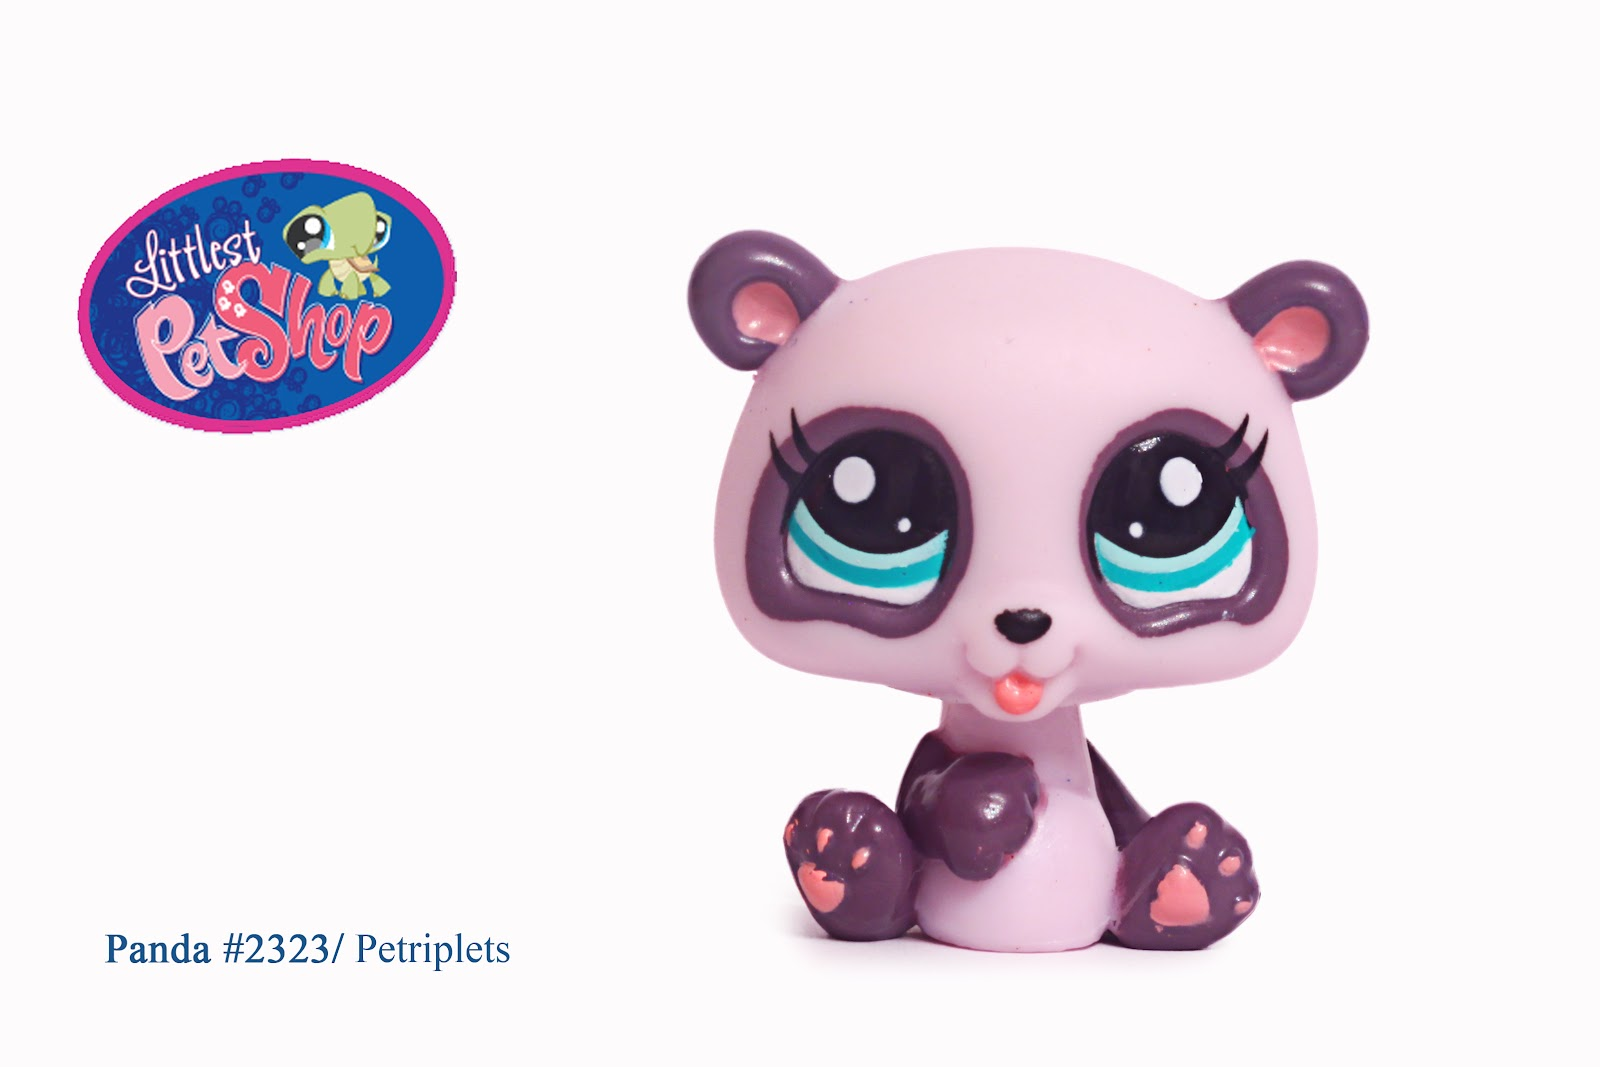 Shop for littlest pet shop online at Target. Free shipping & returns and save 5% Free Shipping $35+ · Same Day Store Pick-Up · 5% Off W/ REDcard · Free ReturnsItems: Activity Pads, Building Kits, Collectible Toys, Puppets, Educational Toys.